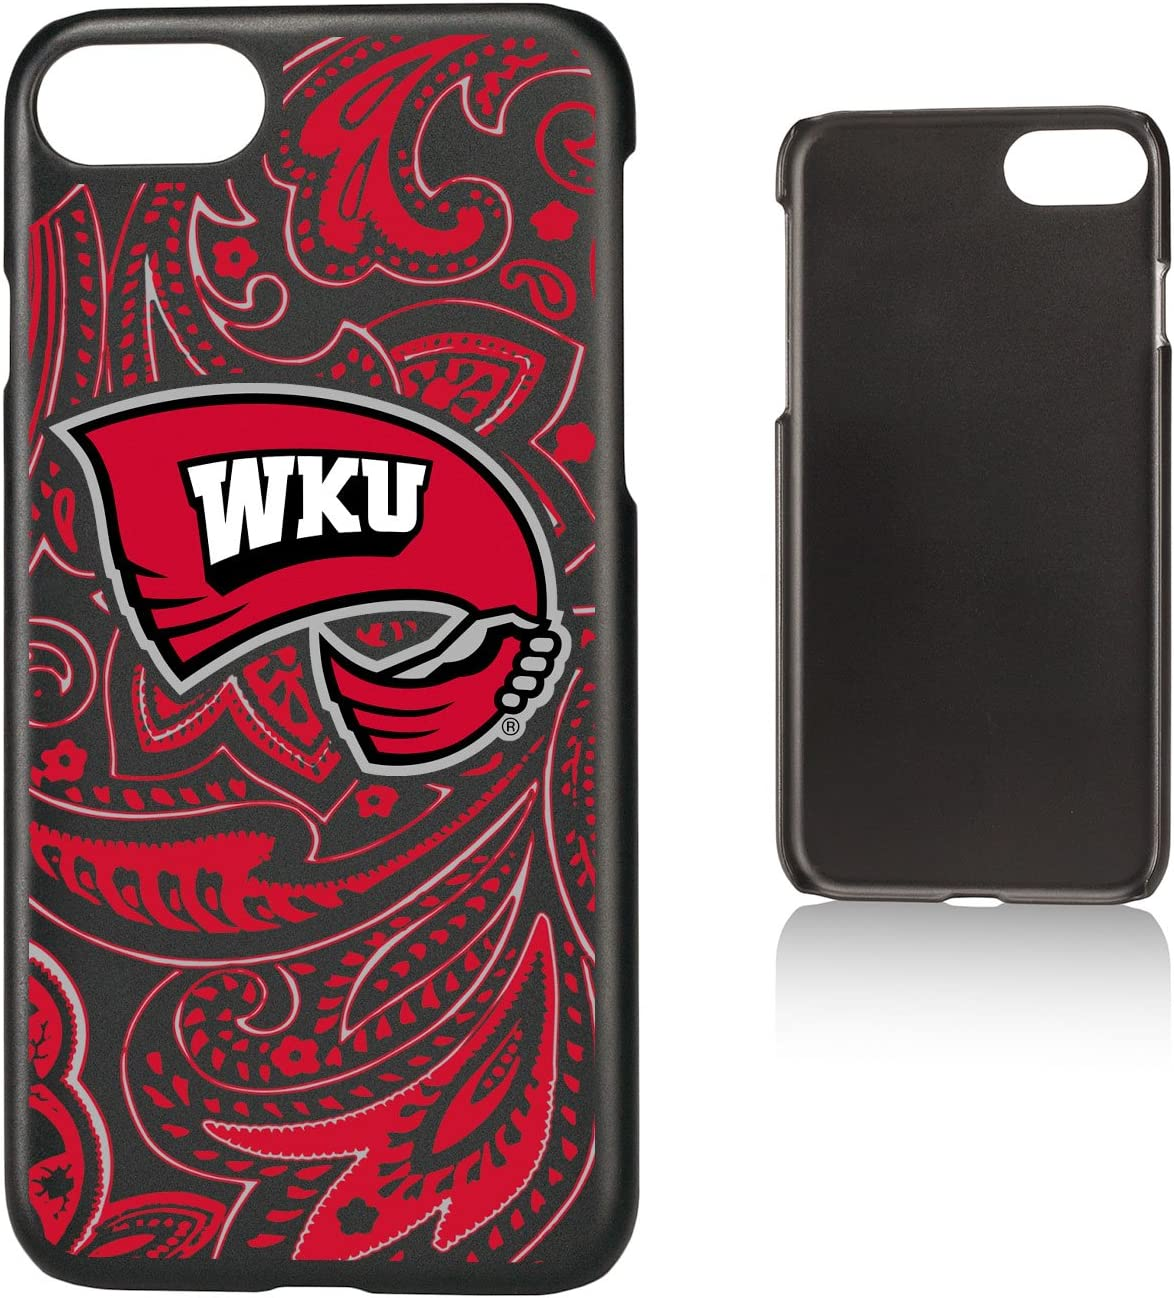 Keyscaper KSLMI7-0WKY-PAISL1 Western Kentucky Hilltoppers iPhone 8//7 Slim Case with WKU Paisley Design